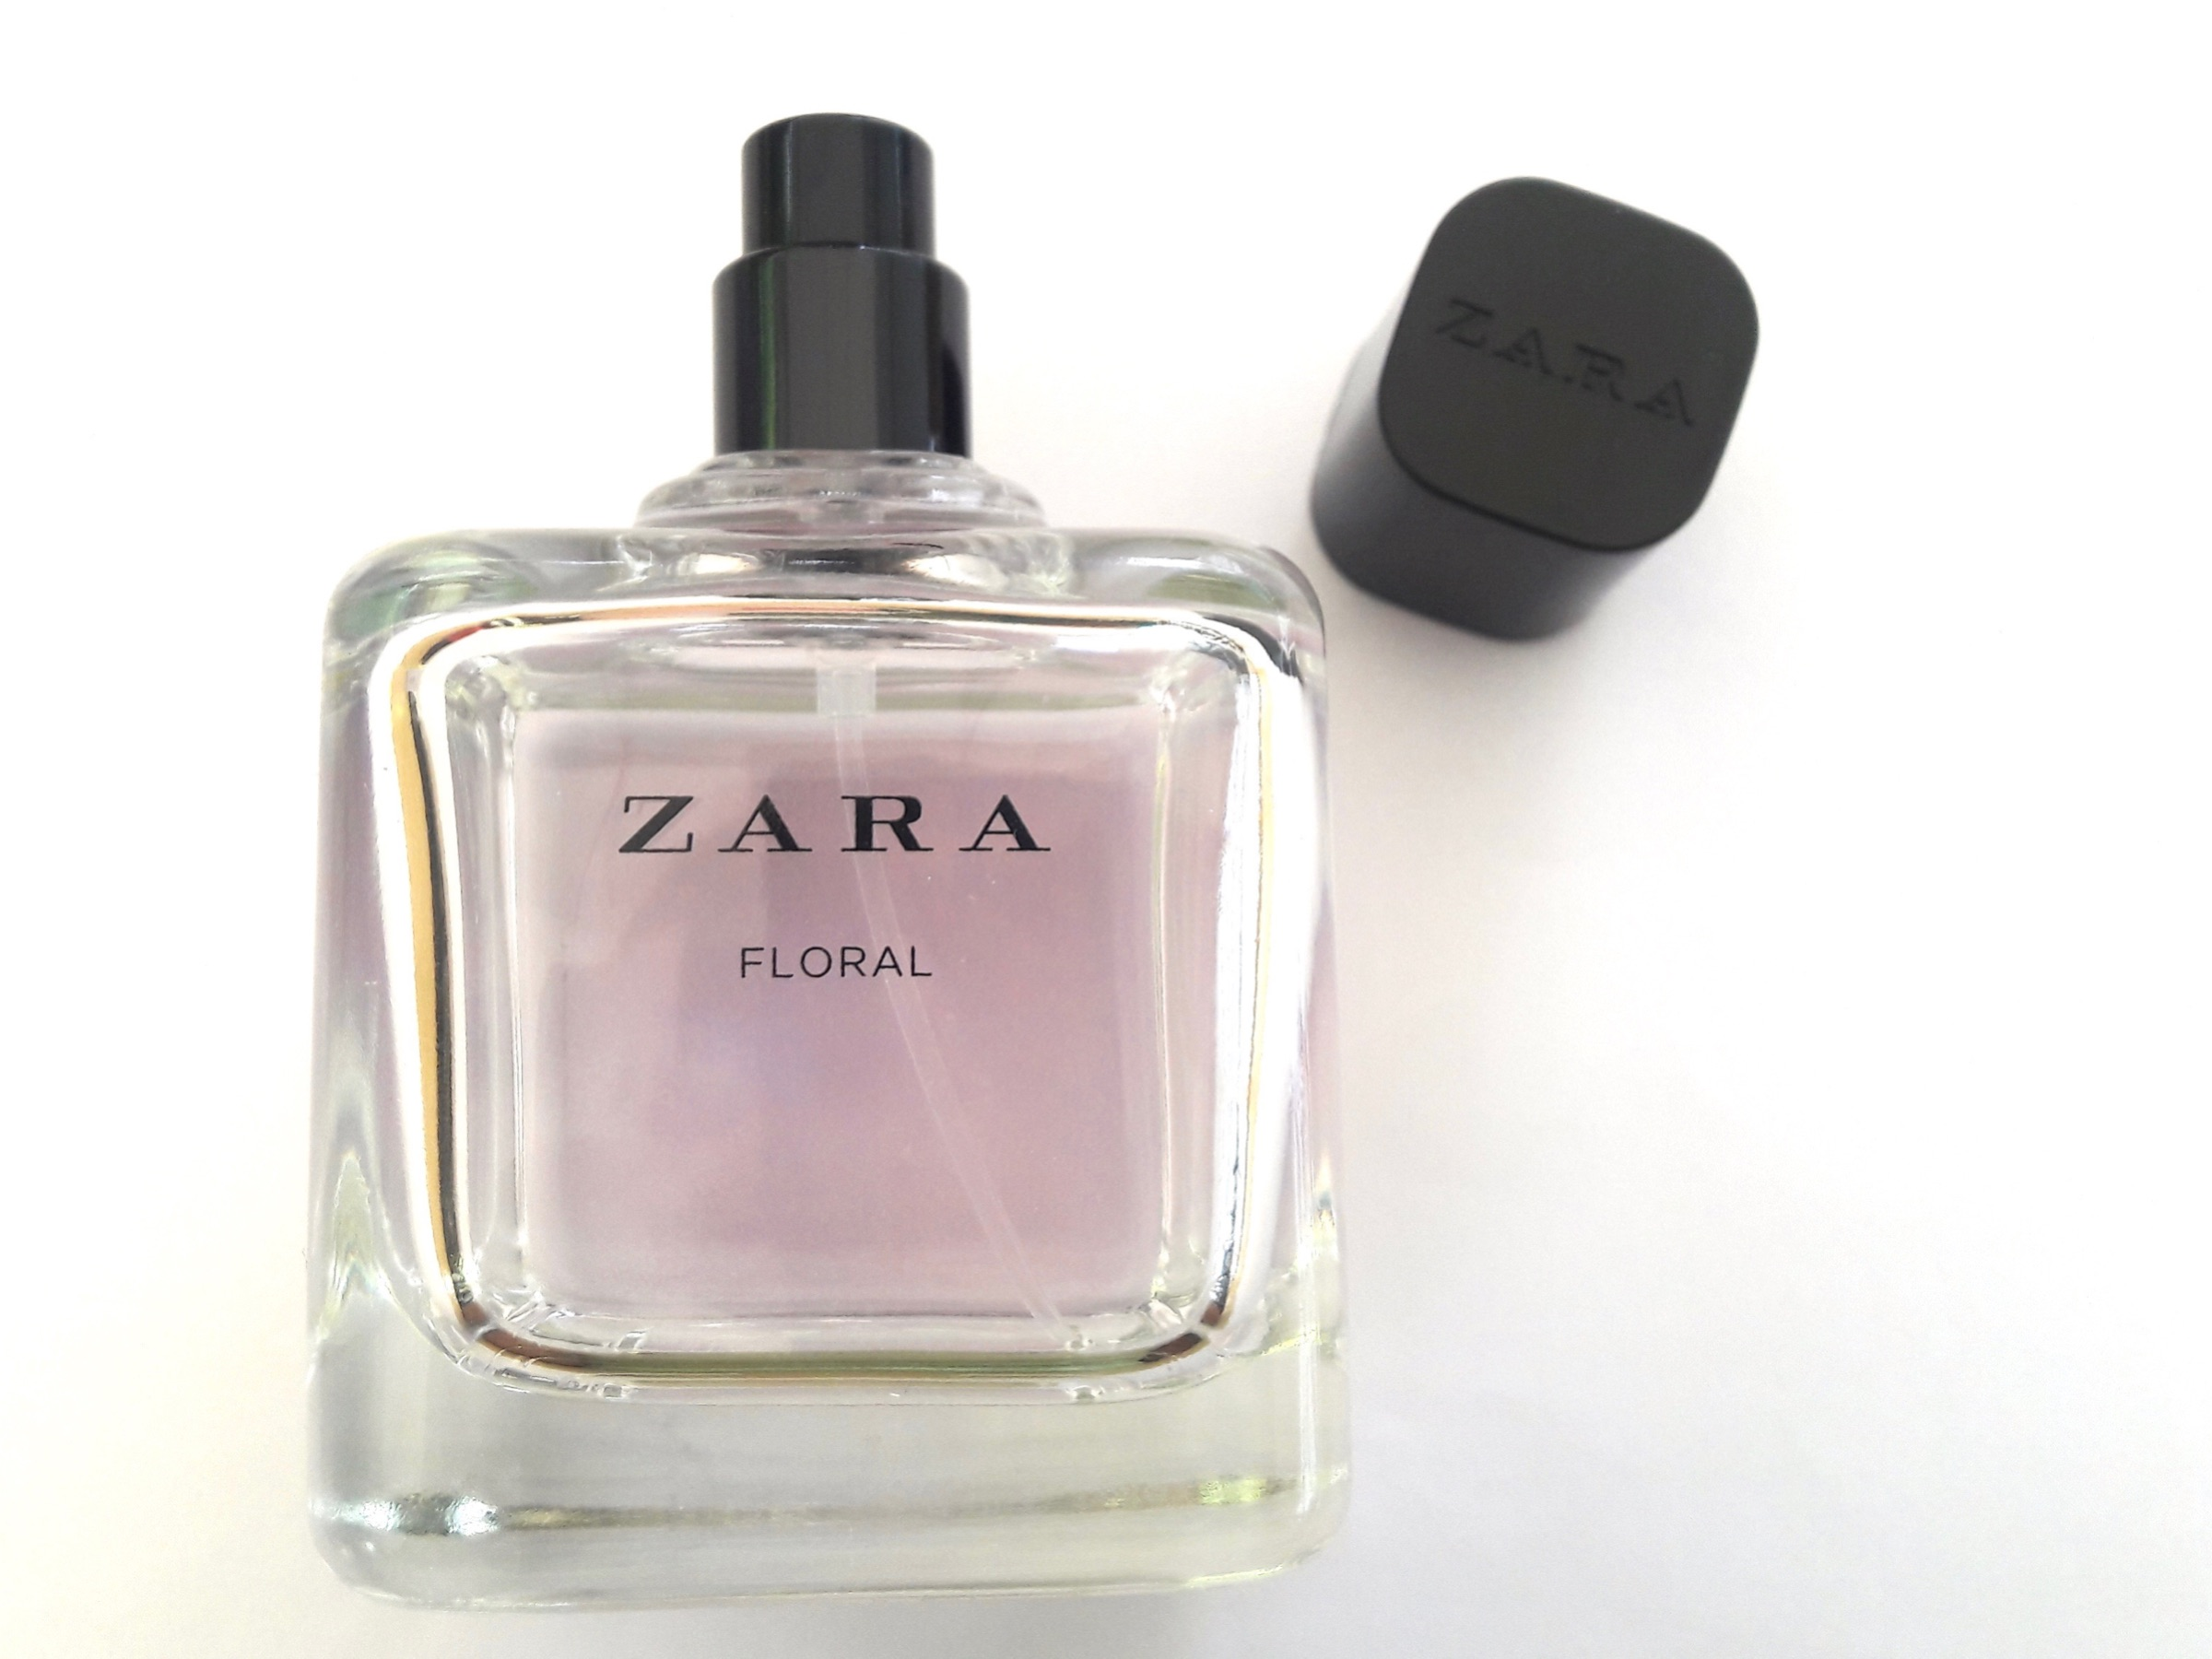 Zara Woman Floral Eau De Toilette Review